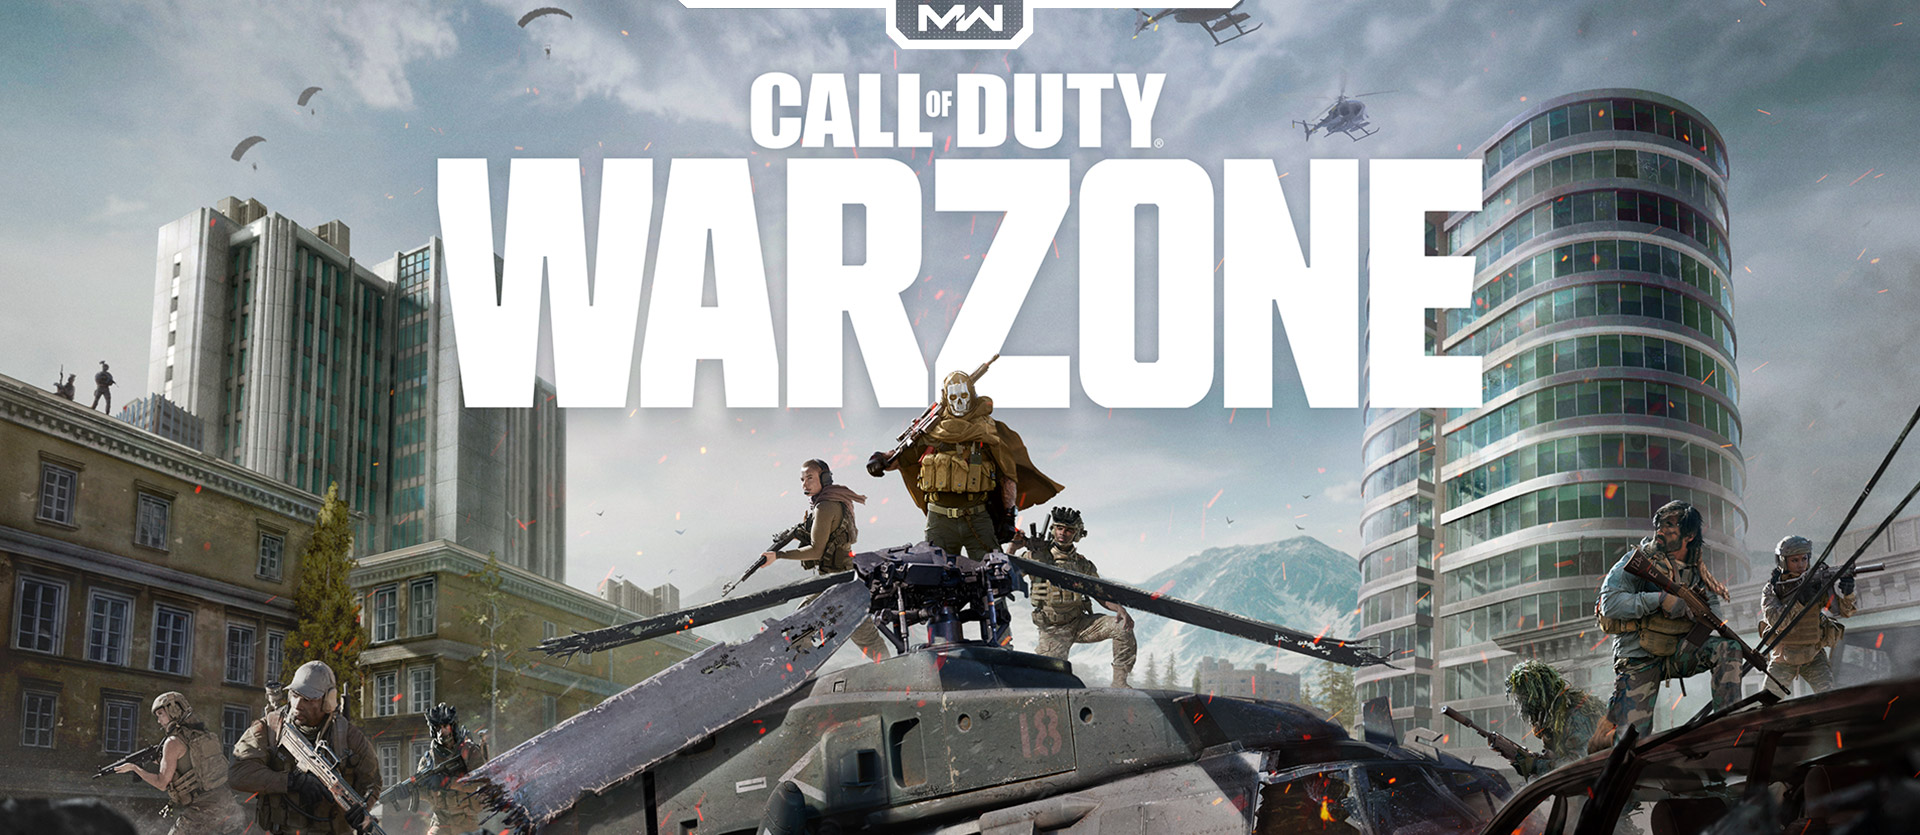 Call of Duty: Warfare and Modern Warfare logo with ghost character on top of a helicopter with other soldiers in a city